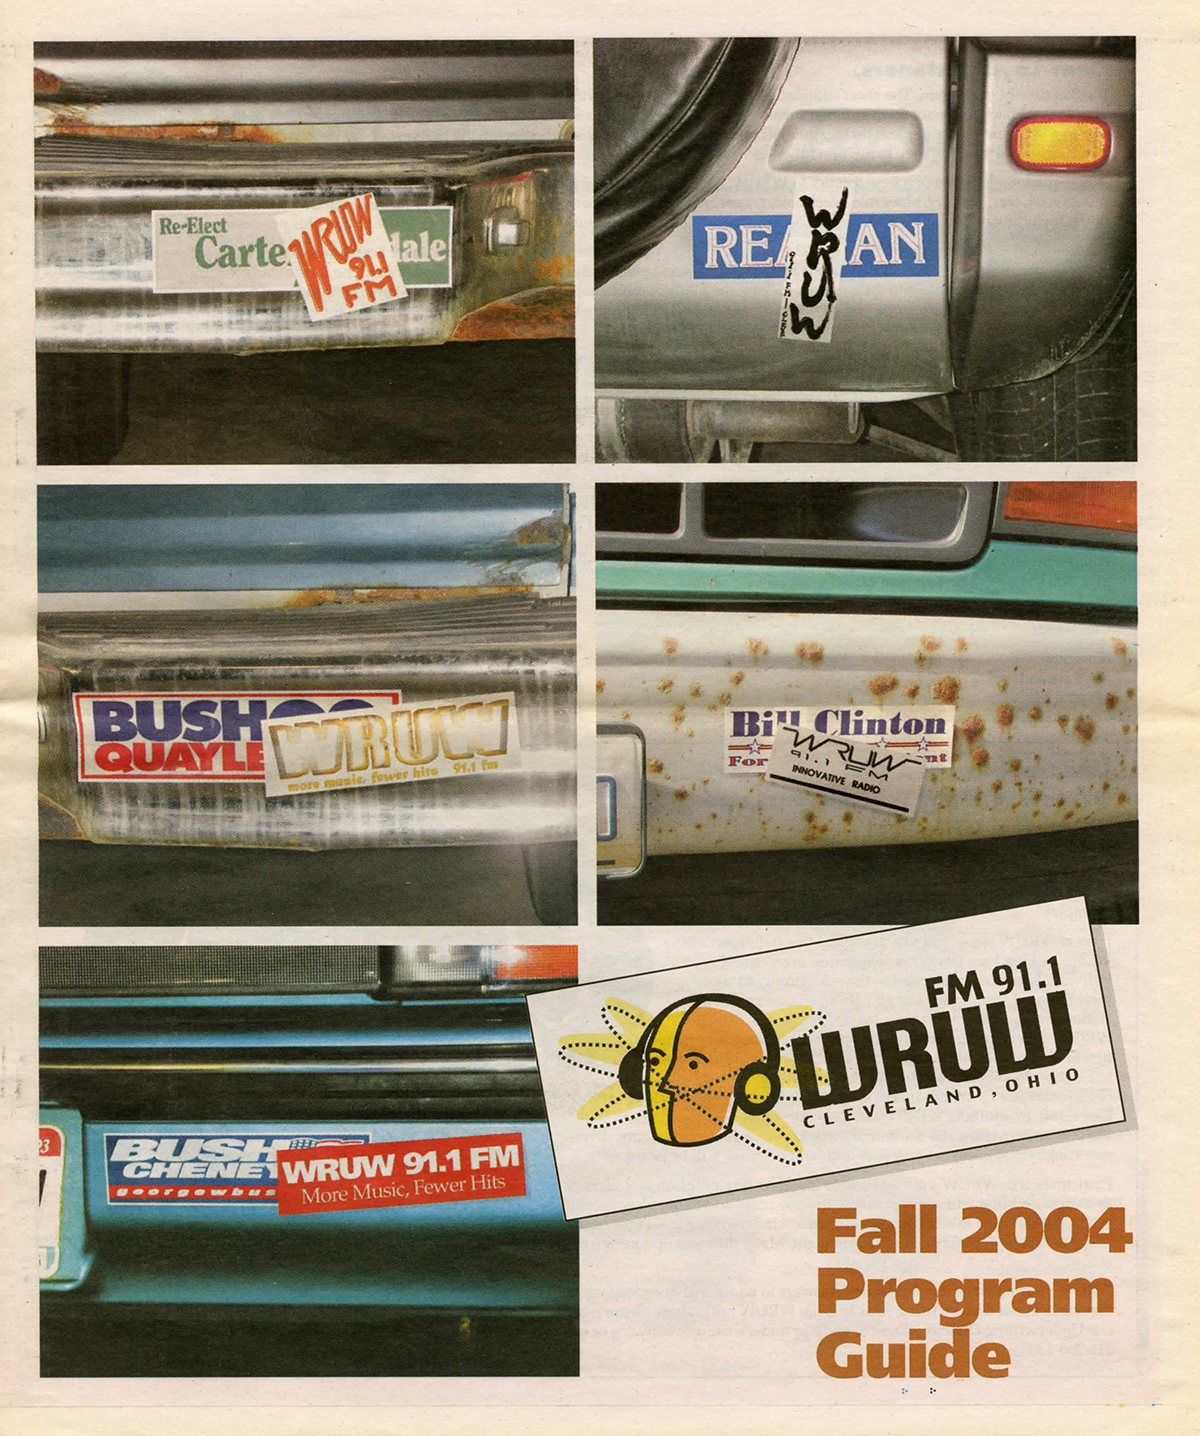 Newsprint cover of WRUW programming guide depicting bumper stickers from fall 2004.